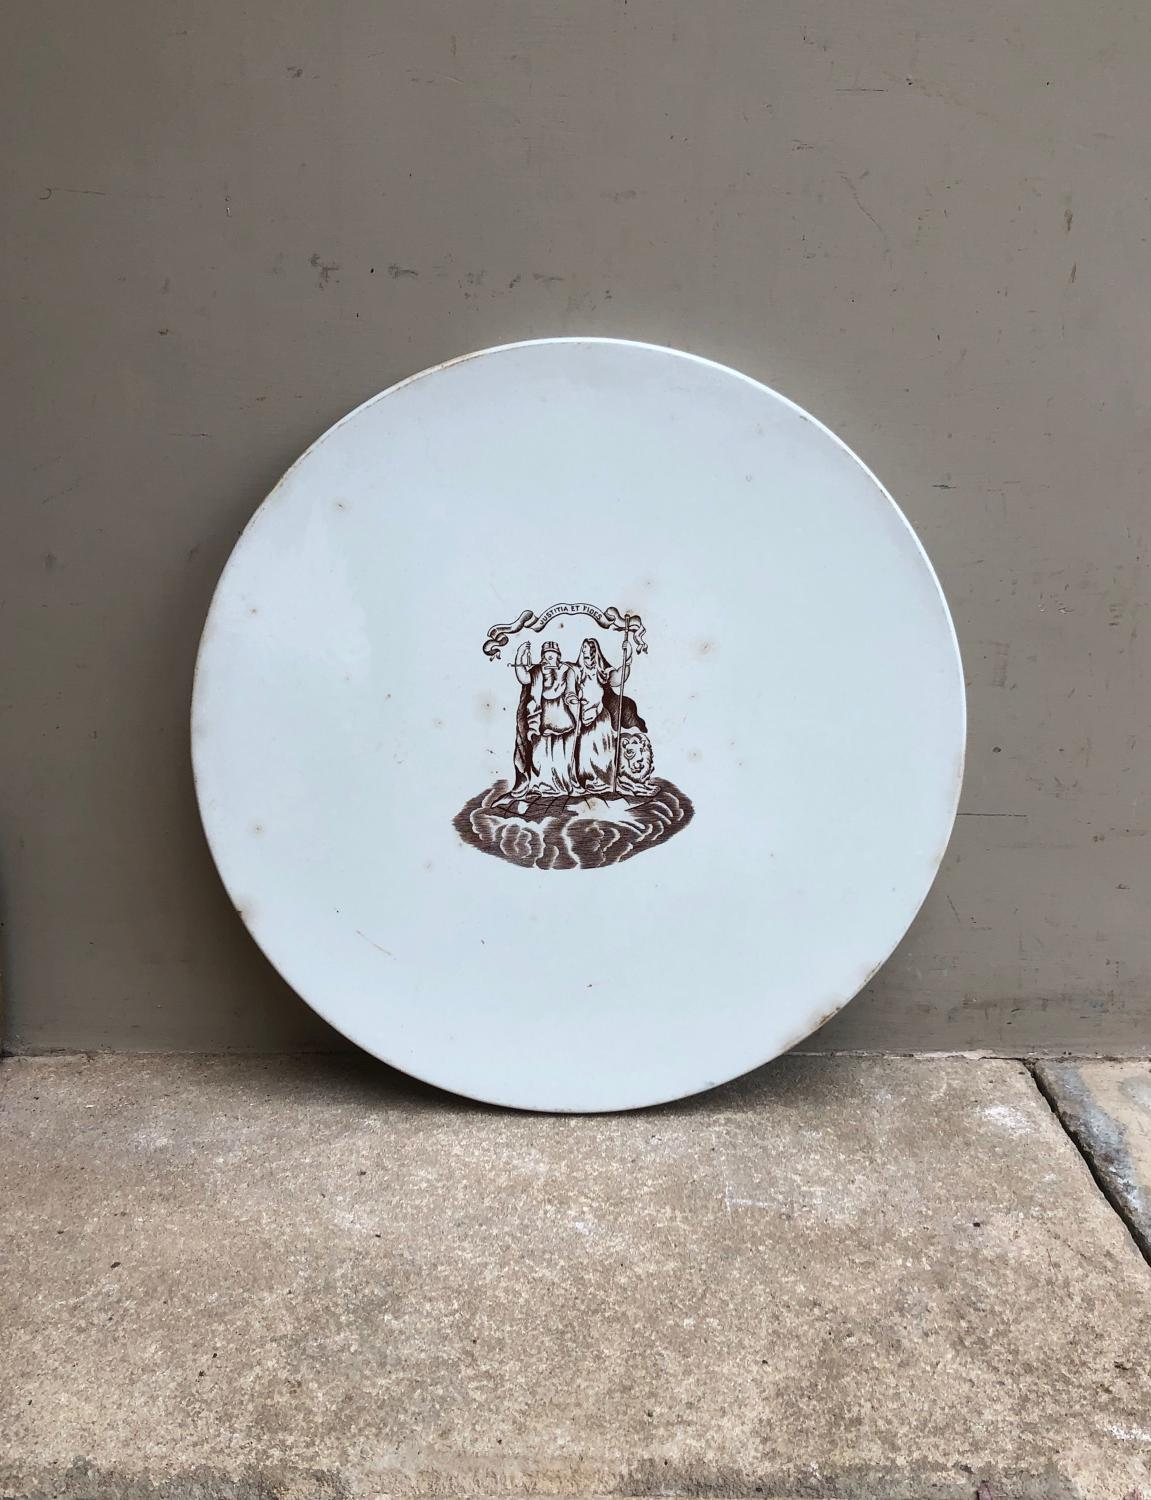 Huge Edwardian White Ironstone Scale Plate - Justice Centrally & Lion